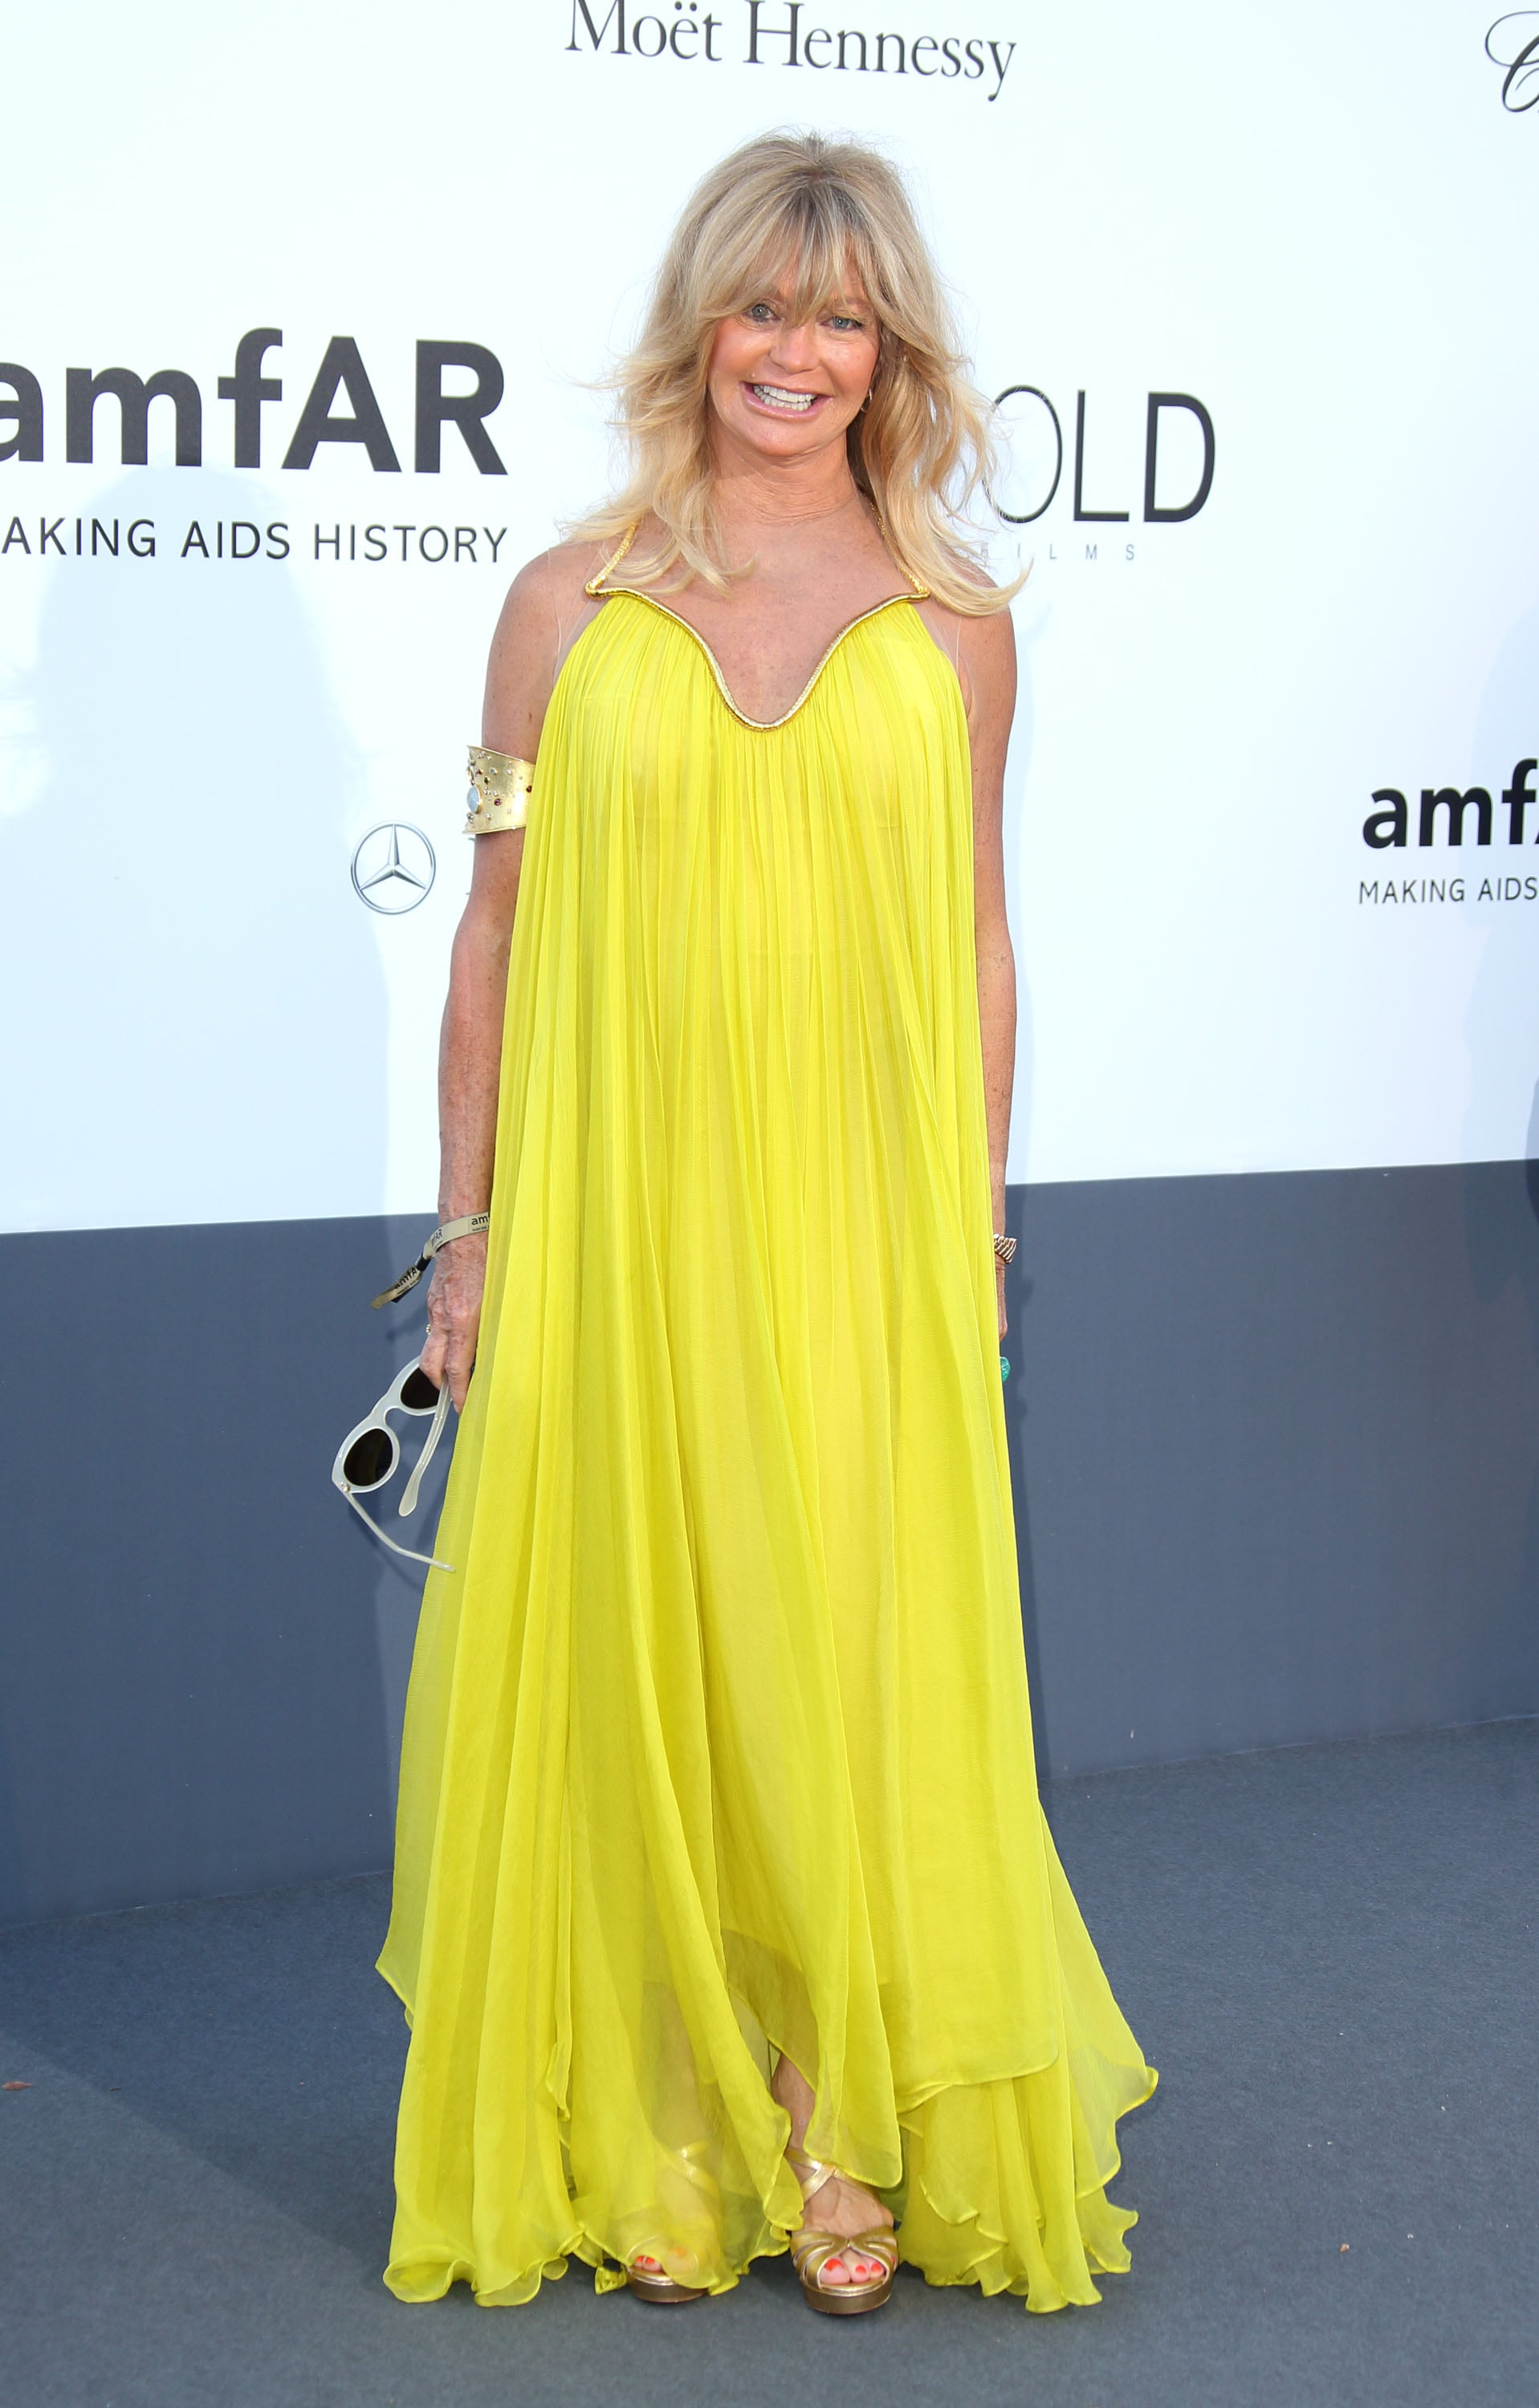 Goldie Hawn smiled in her yellow gown on Thursday for the annual amfAR gala in Cannes.